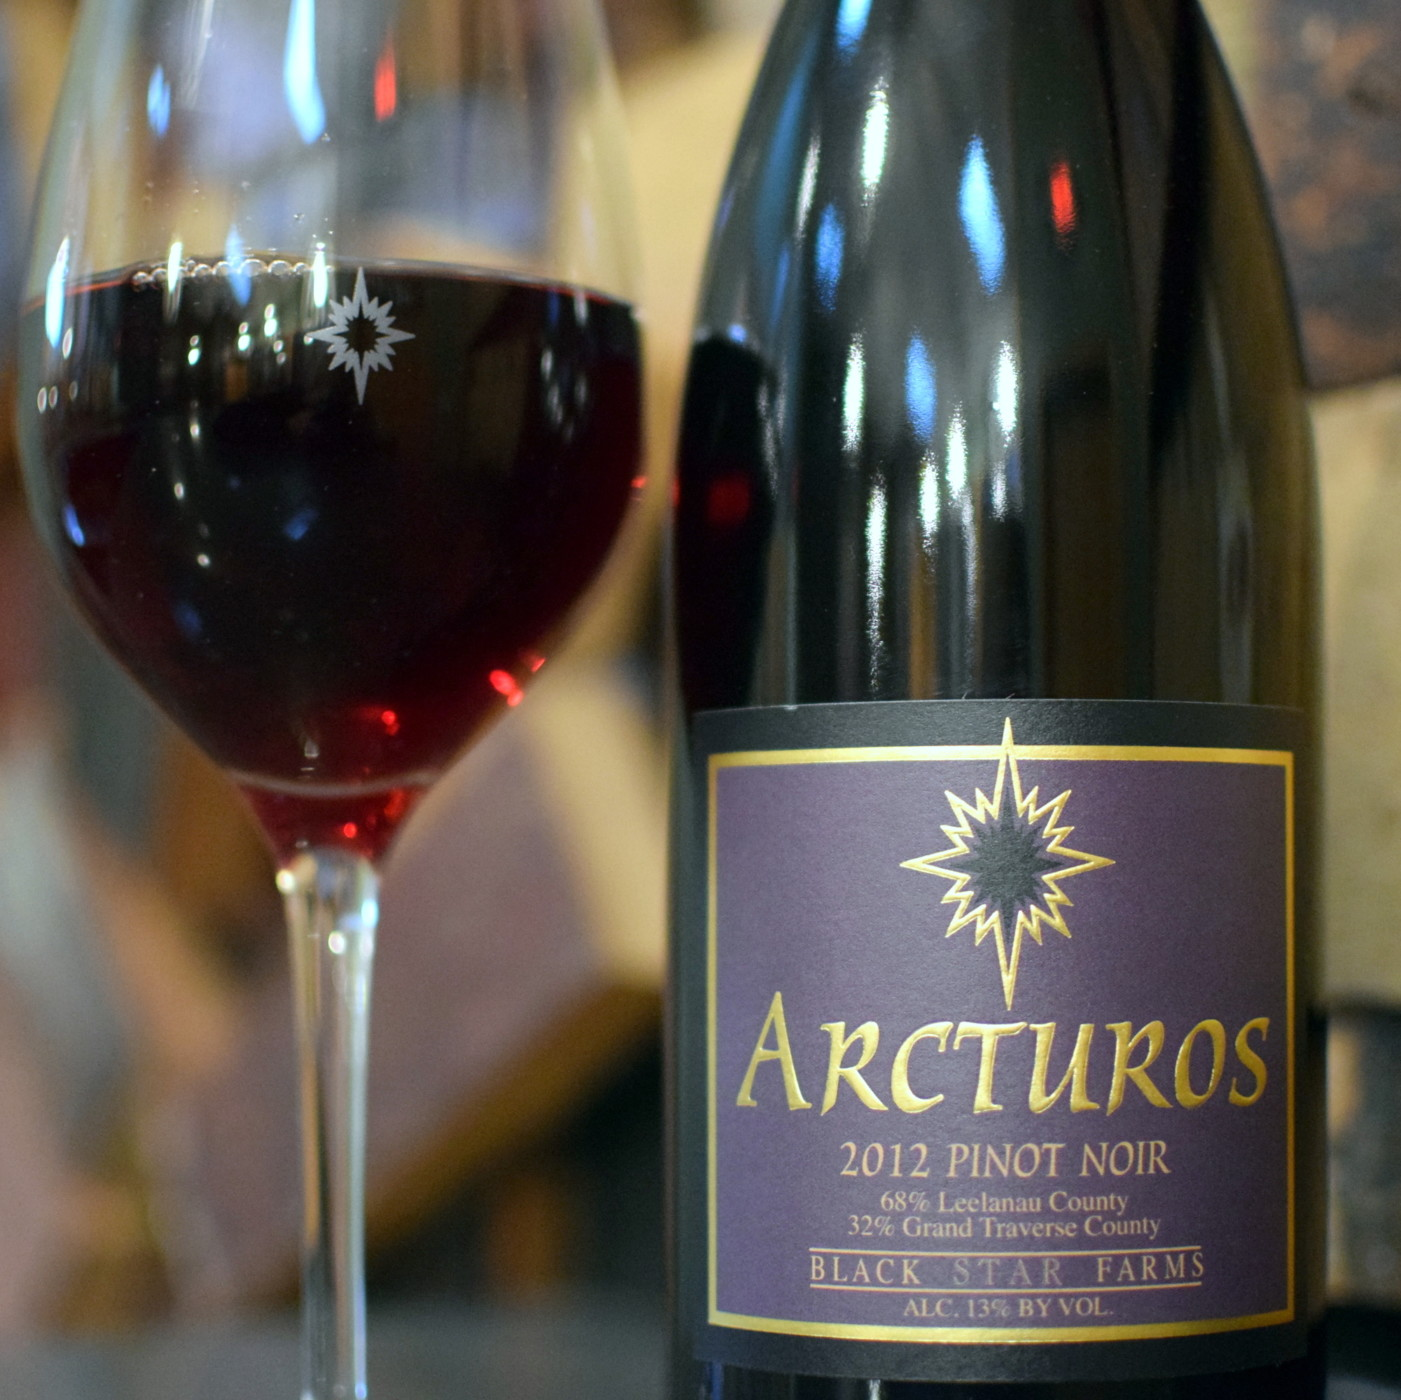 Bottle and glass of Black Star Farms Arcturos Pinot Noir.